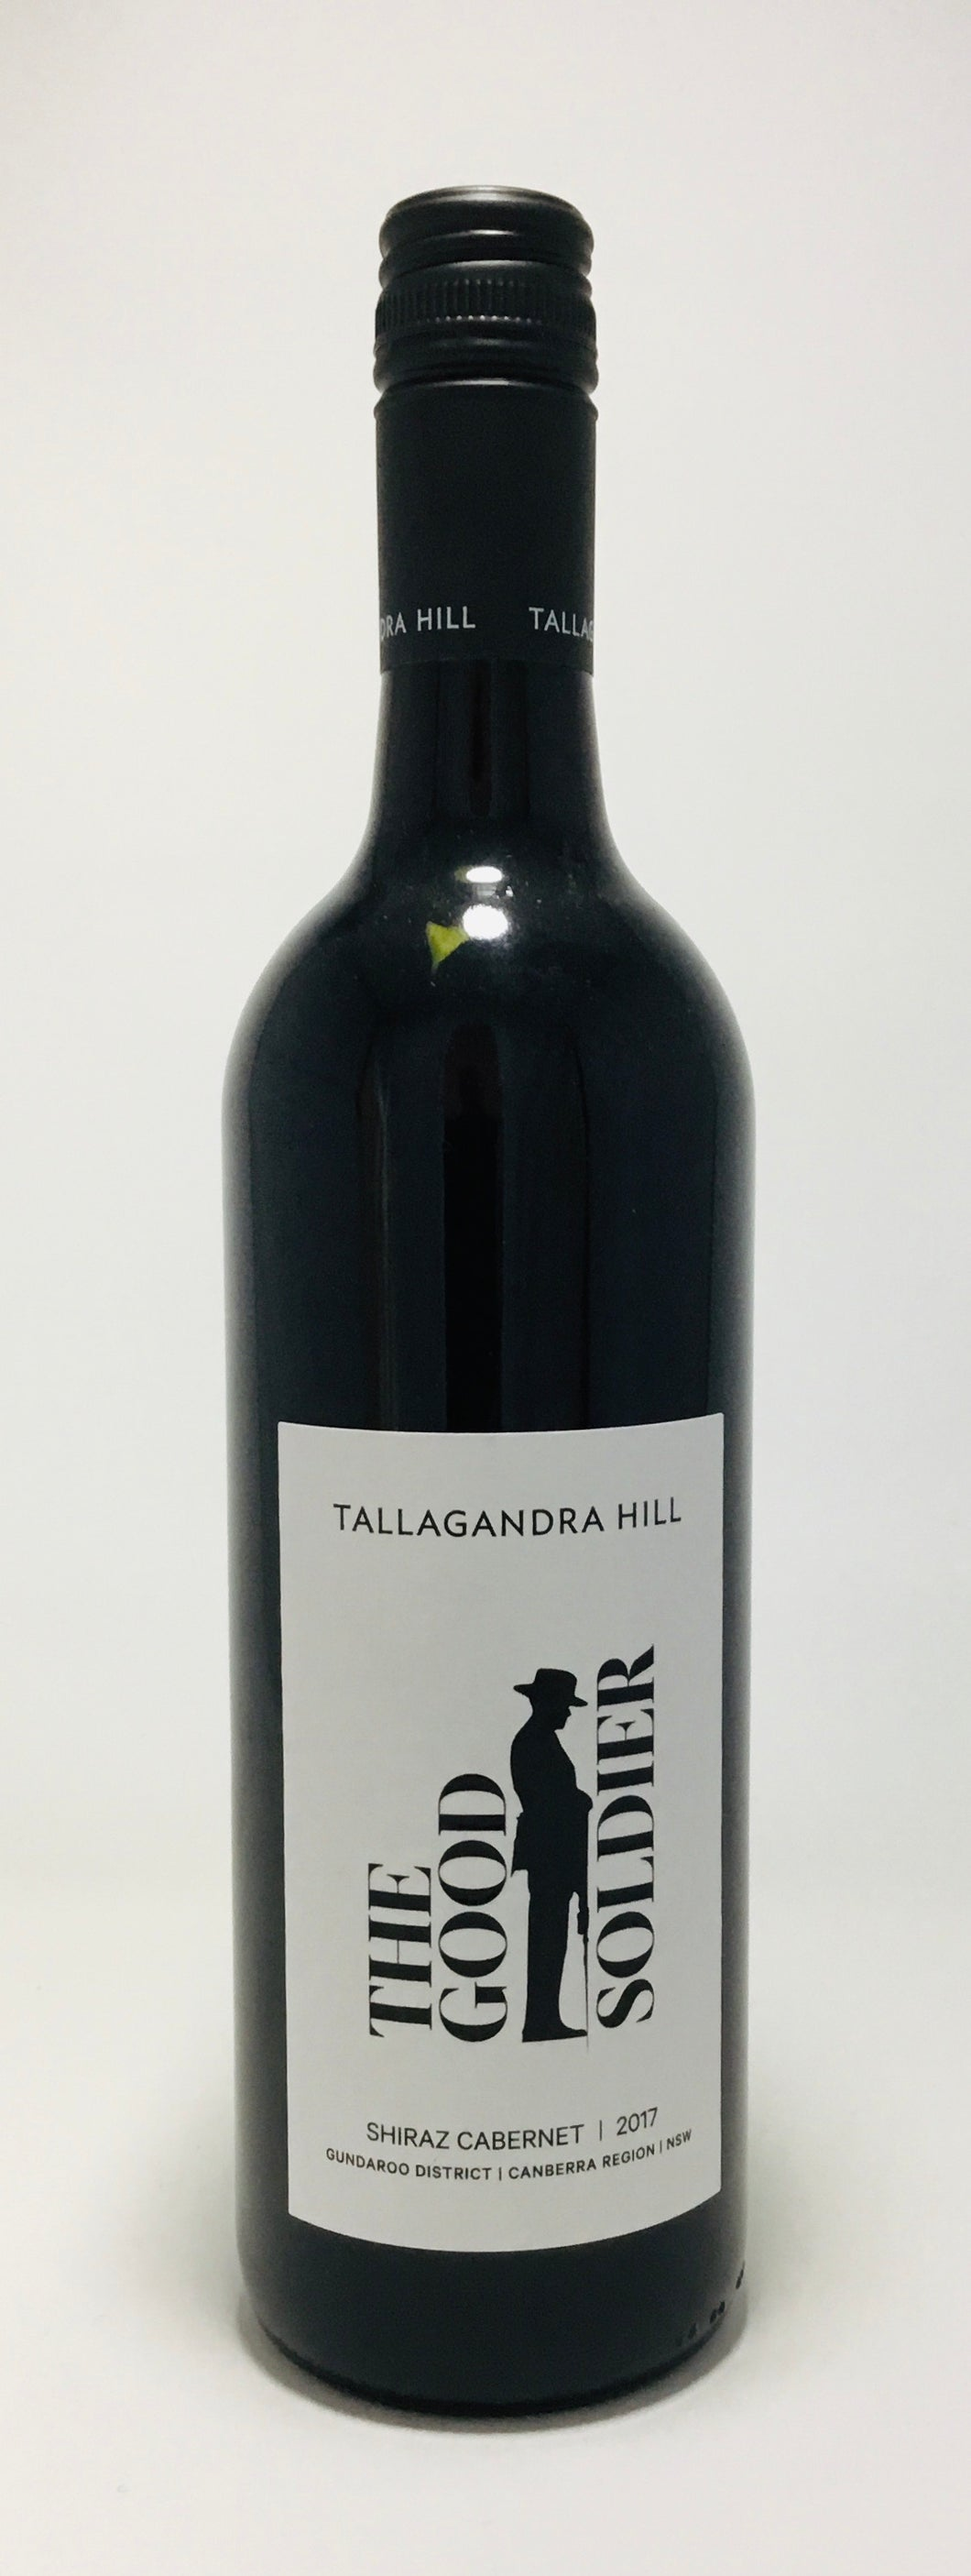 Tallagandra Hill The Good Soldier Shiraz Cabernet